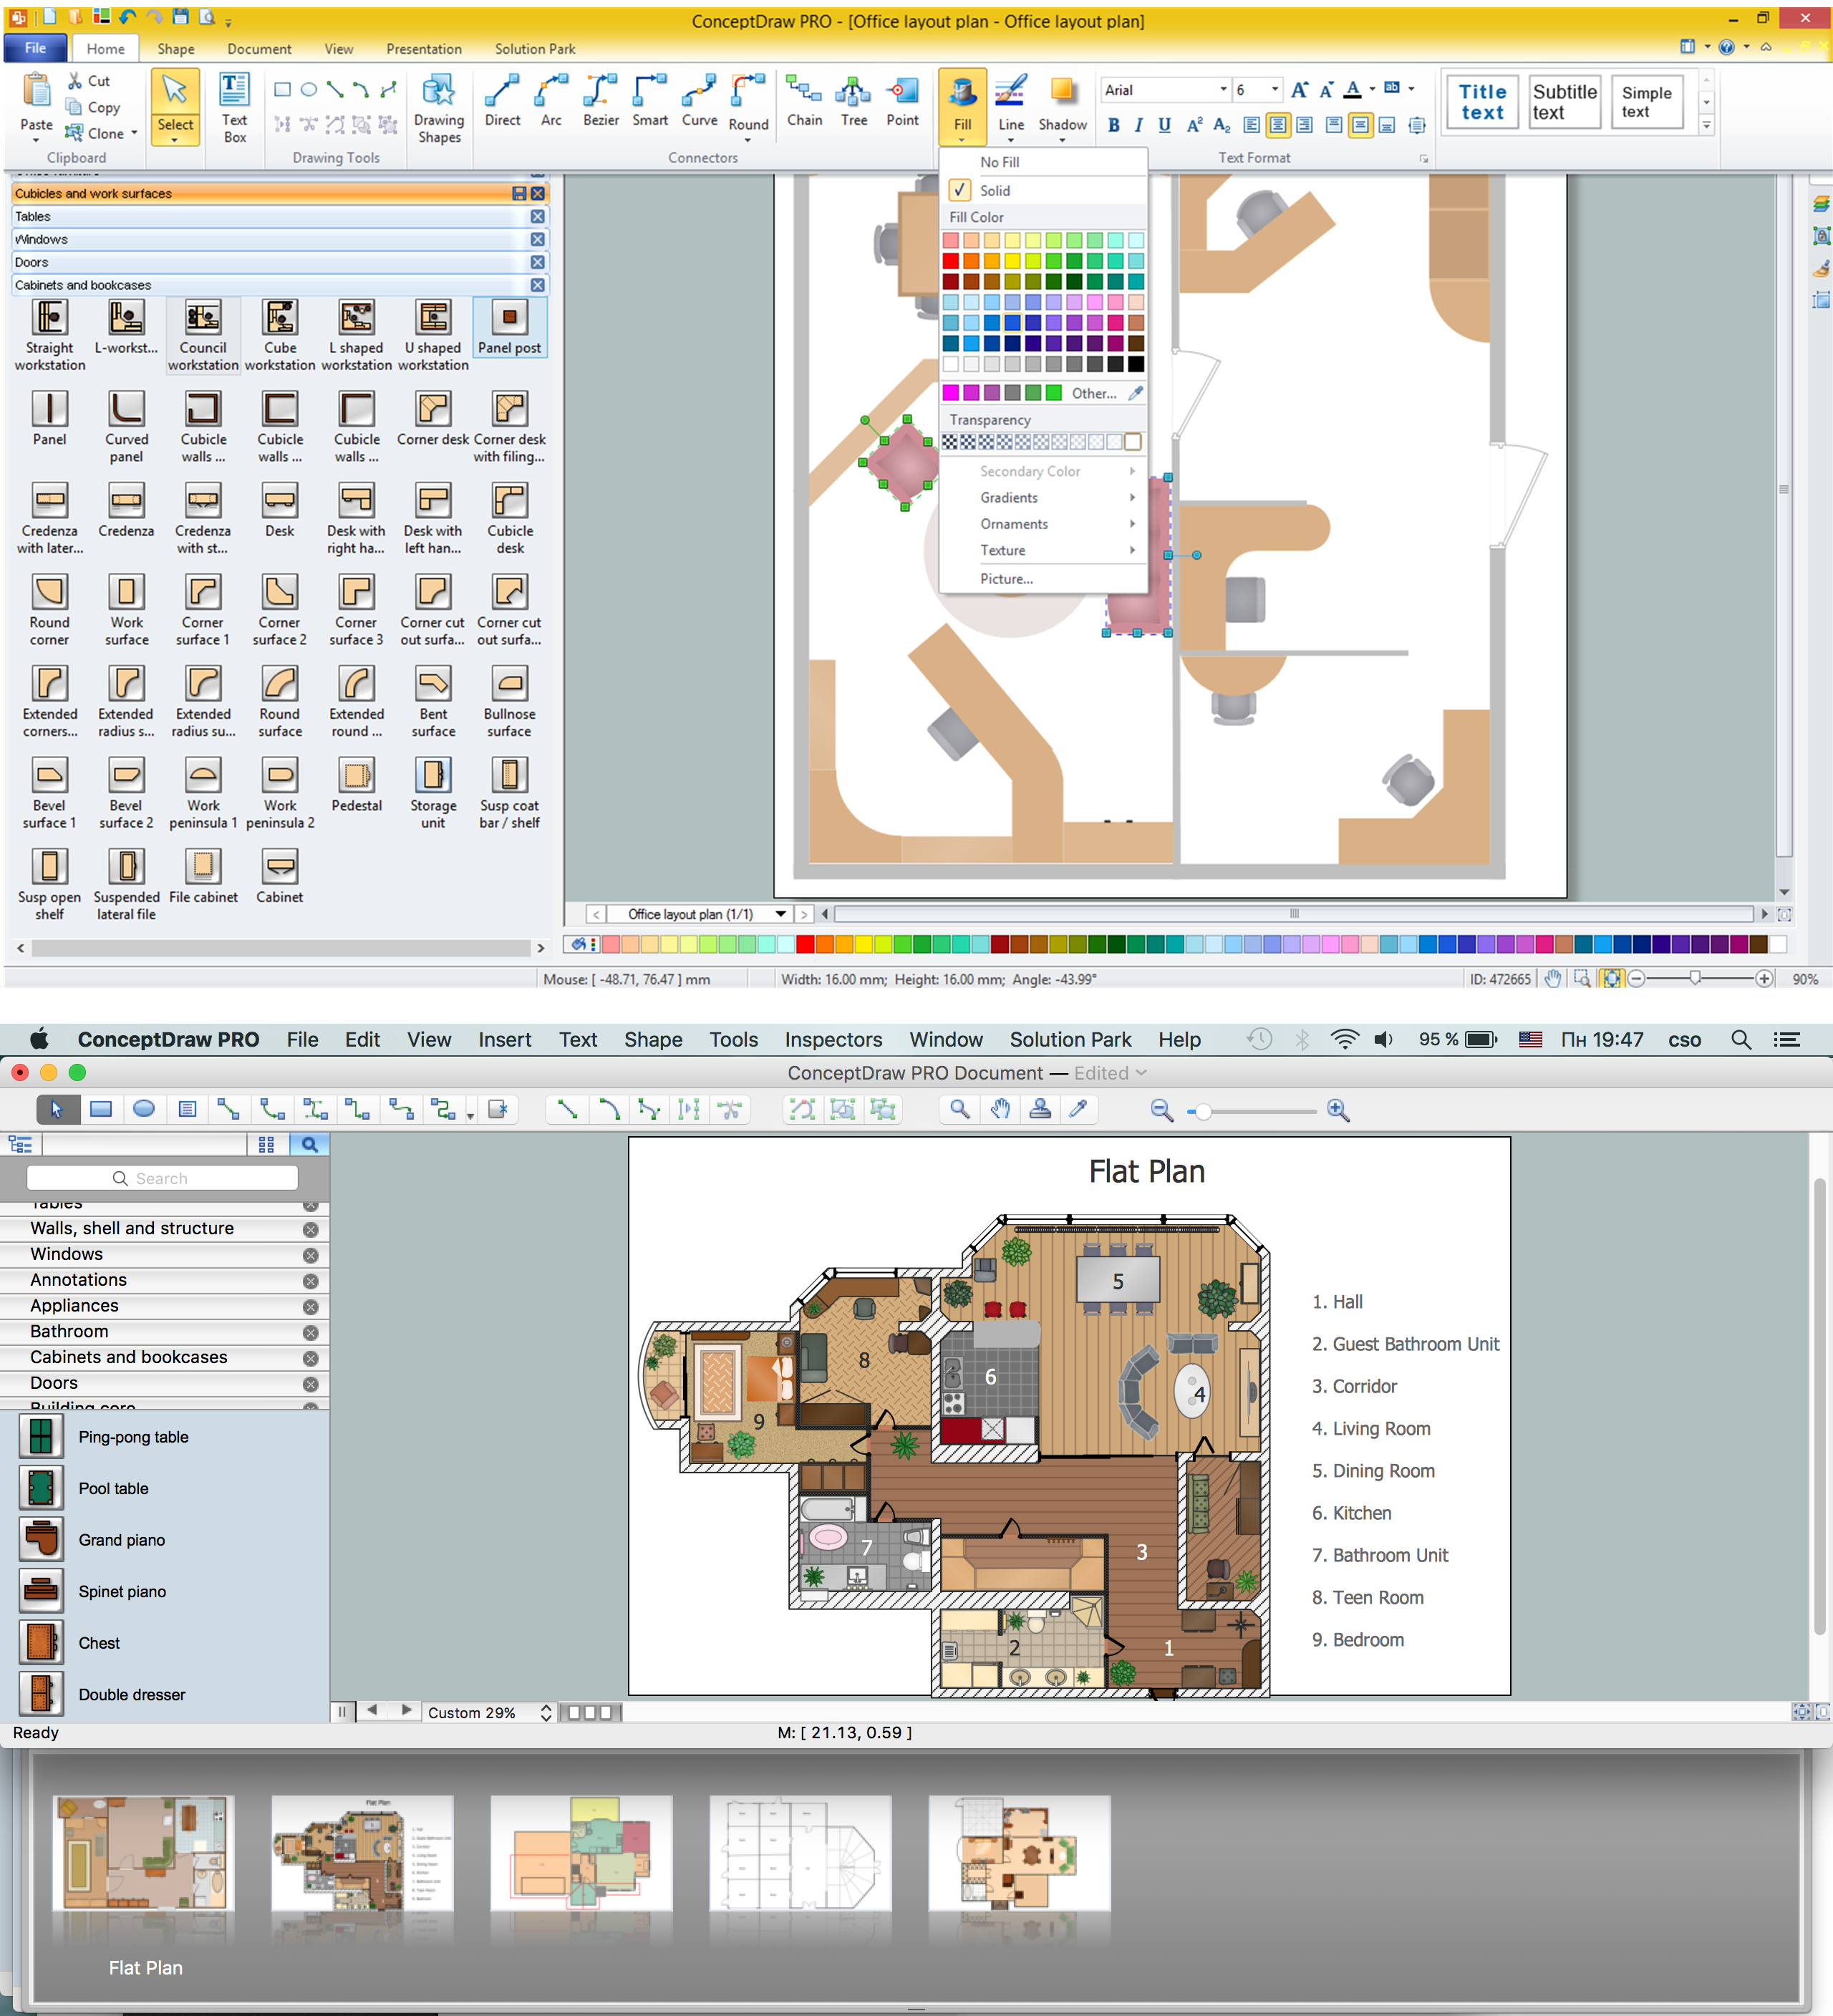 Office layout plans interior design office layout plan design element office layout office Building layout maker